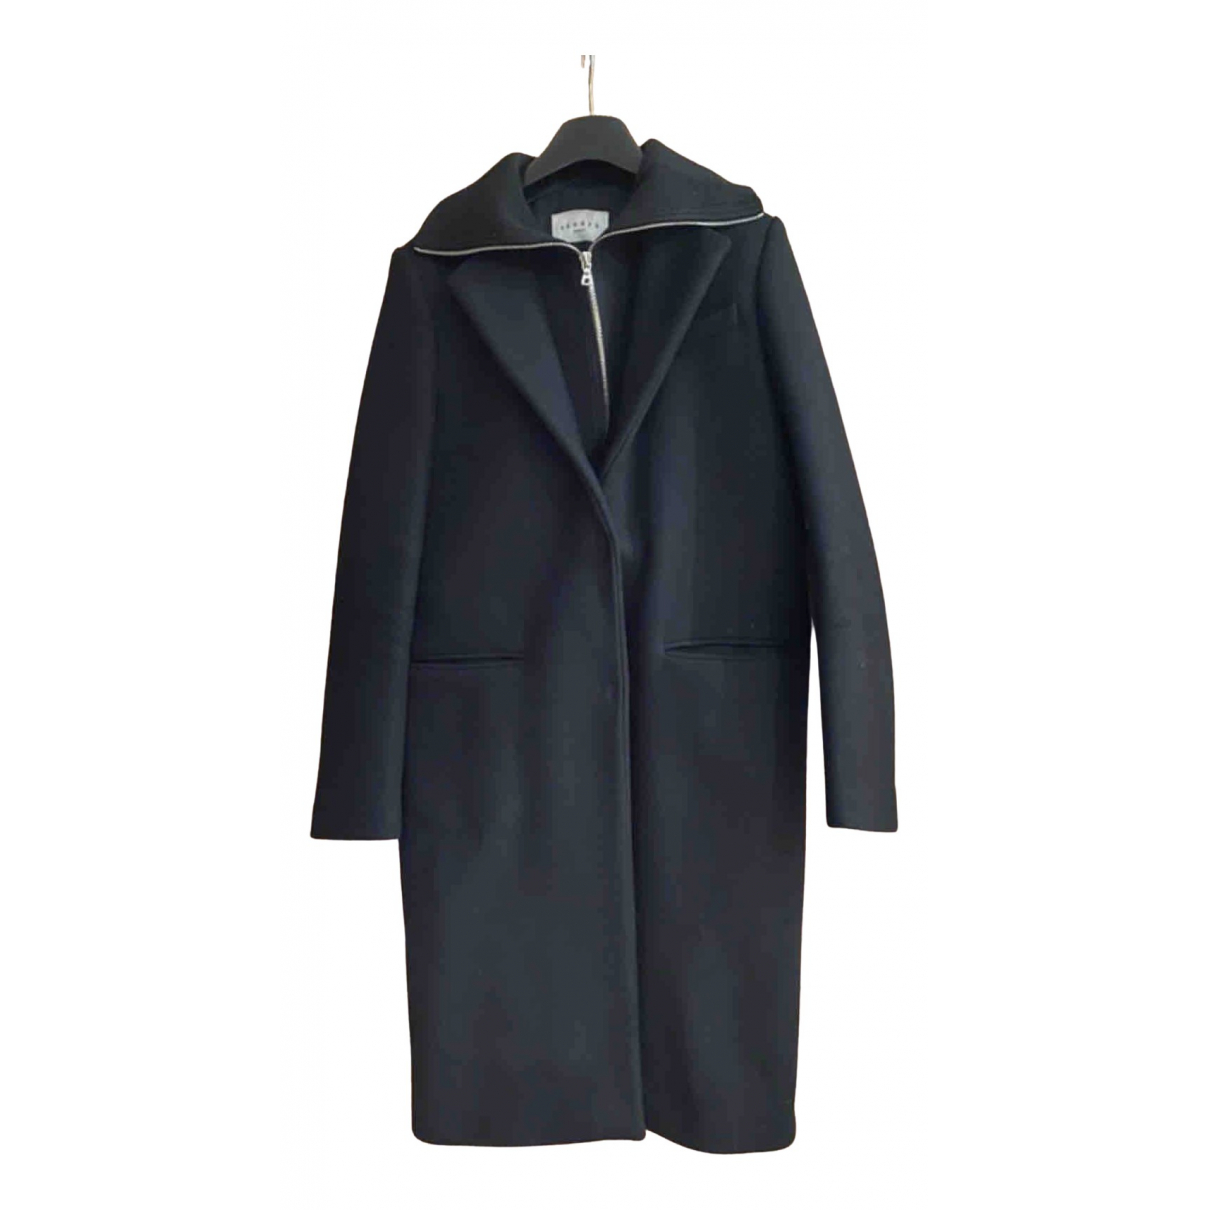 Sandro \N Black Wool coat for Women S International